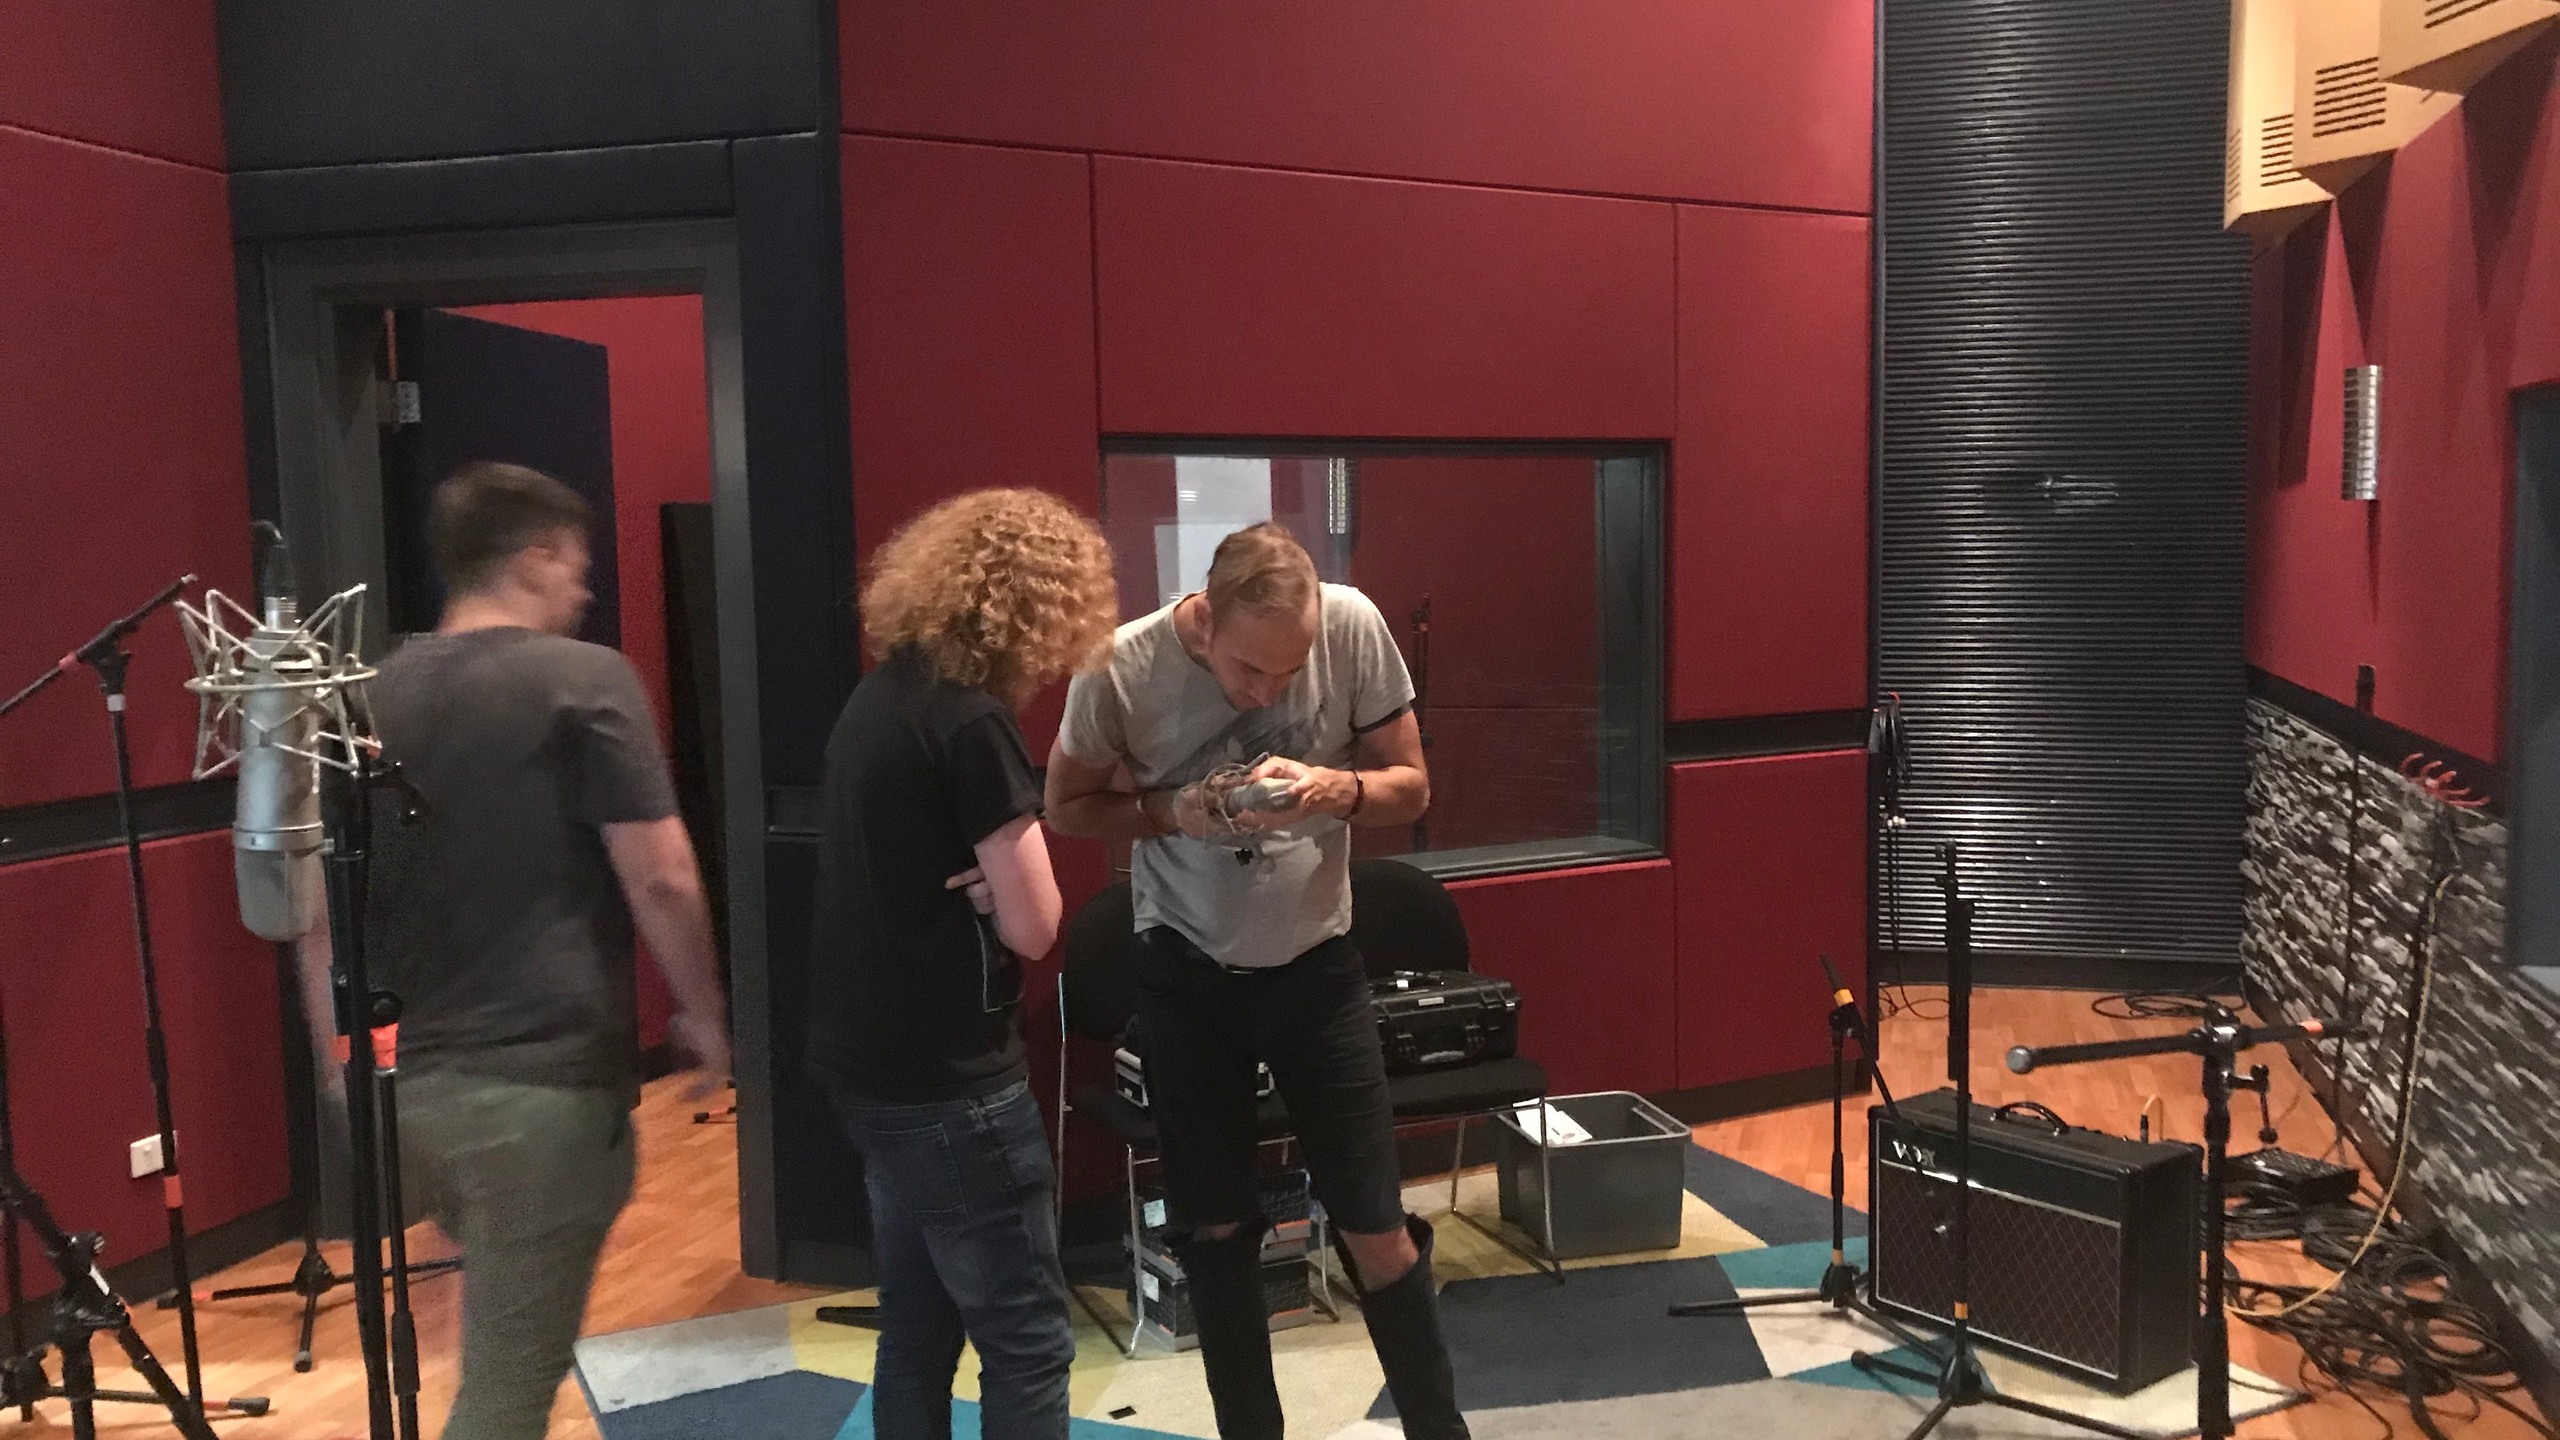 Setting up the Neve